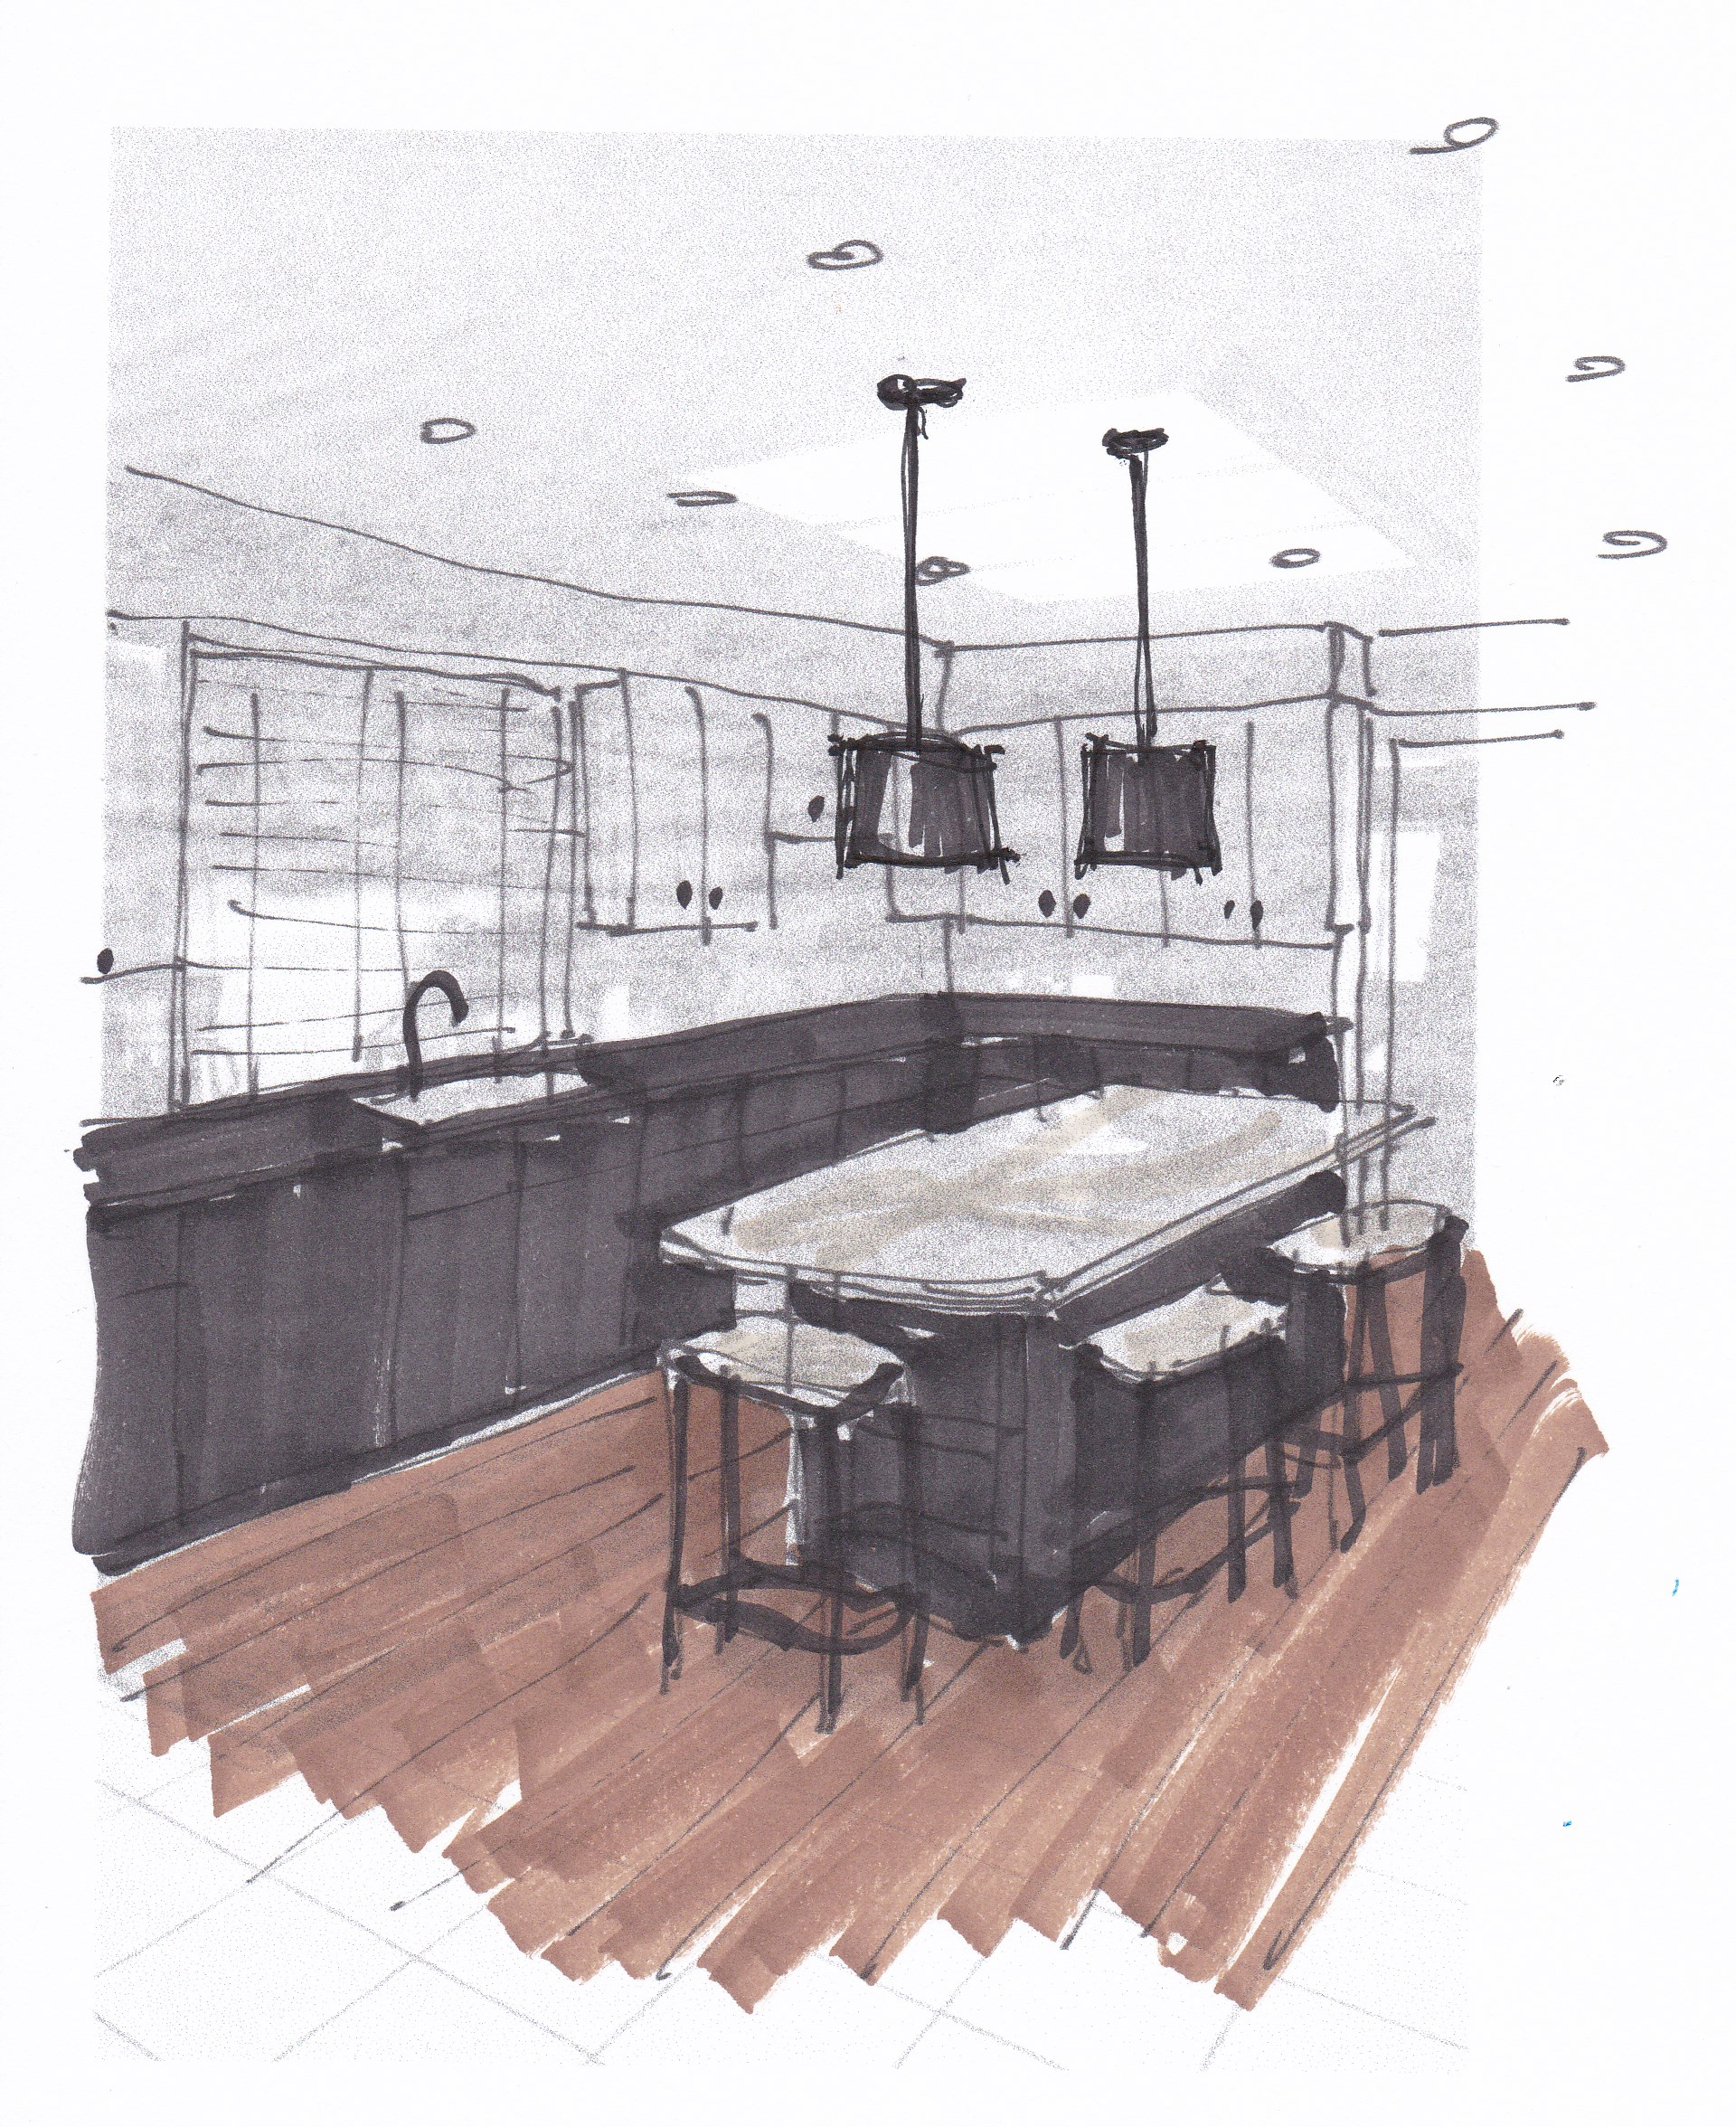 Quick sketch of two tone kitchen for consultation client - Carla Aston, Designer